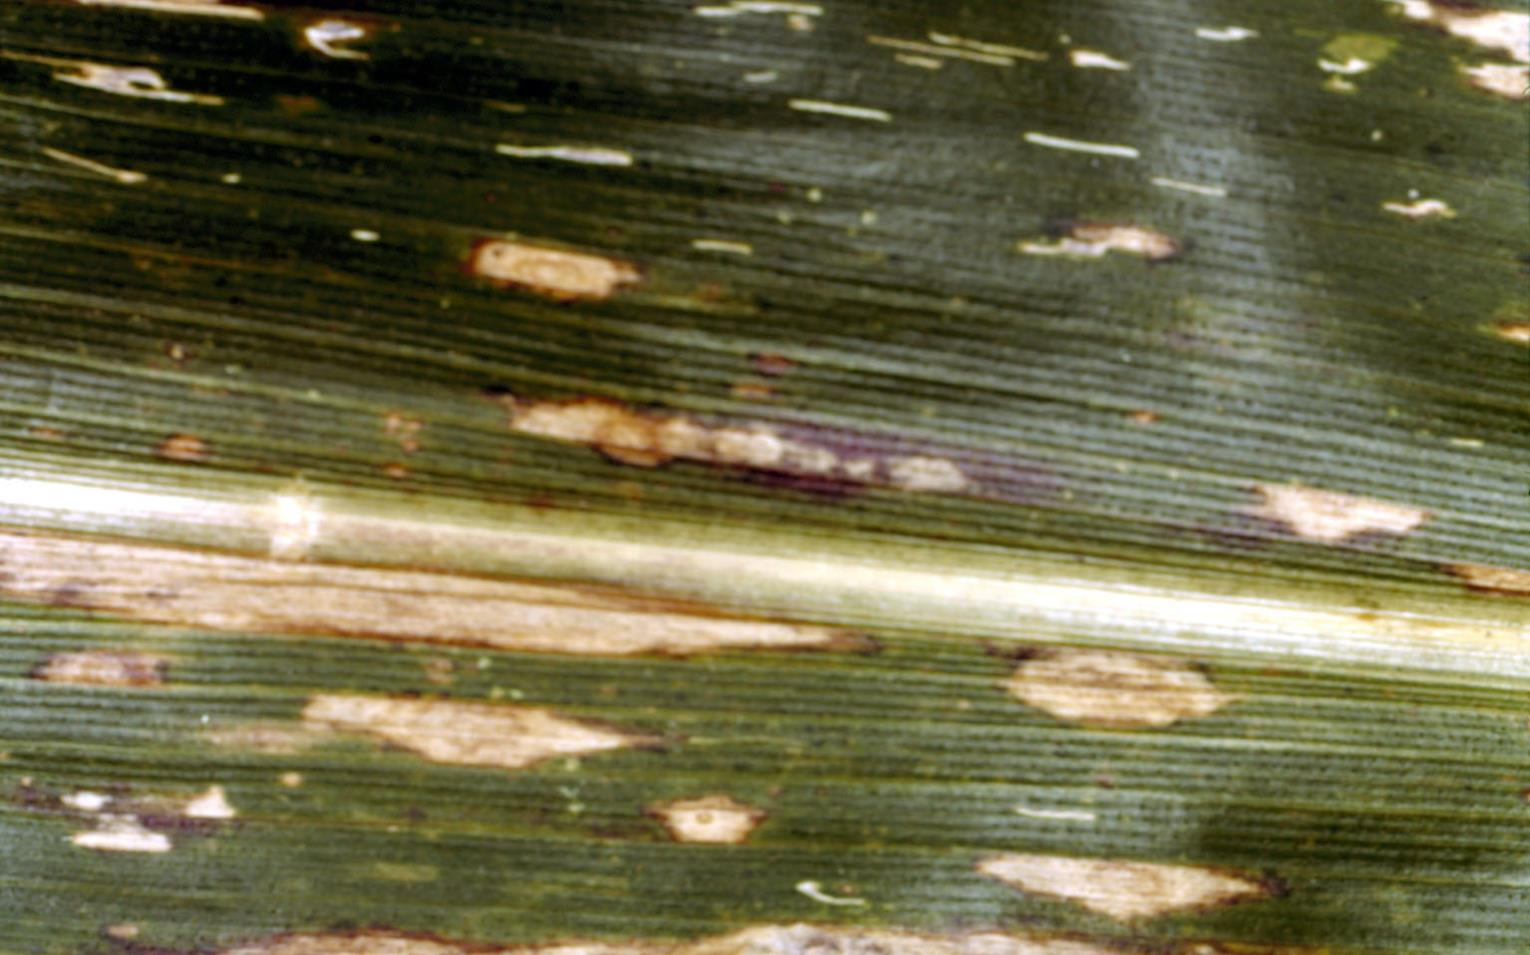 Southern_corn_leaf_blight_1.jpg